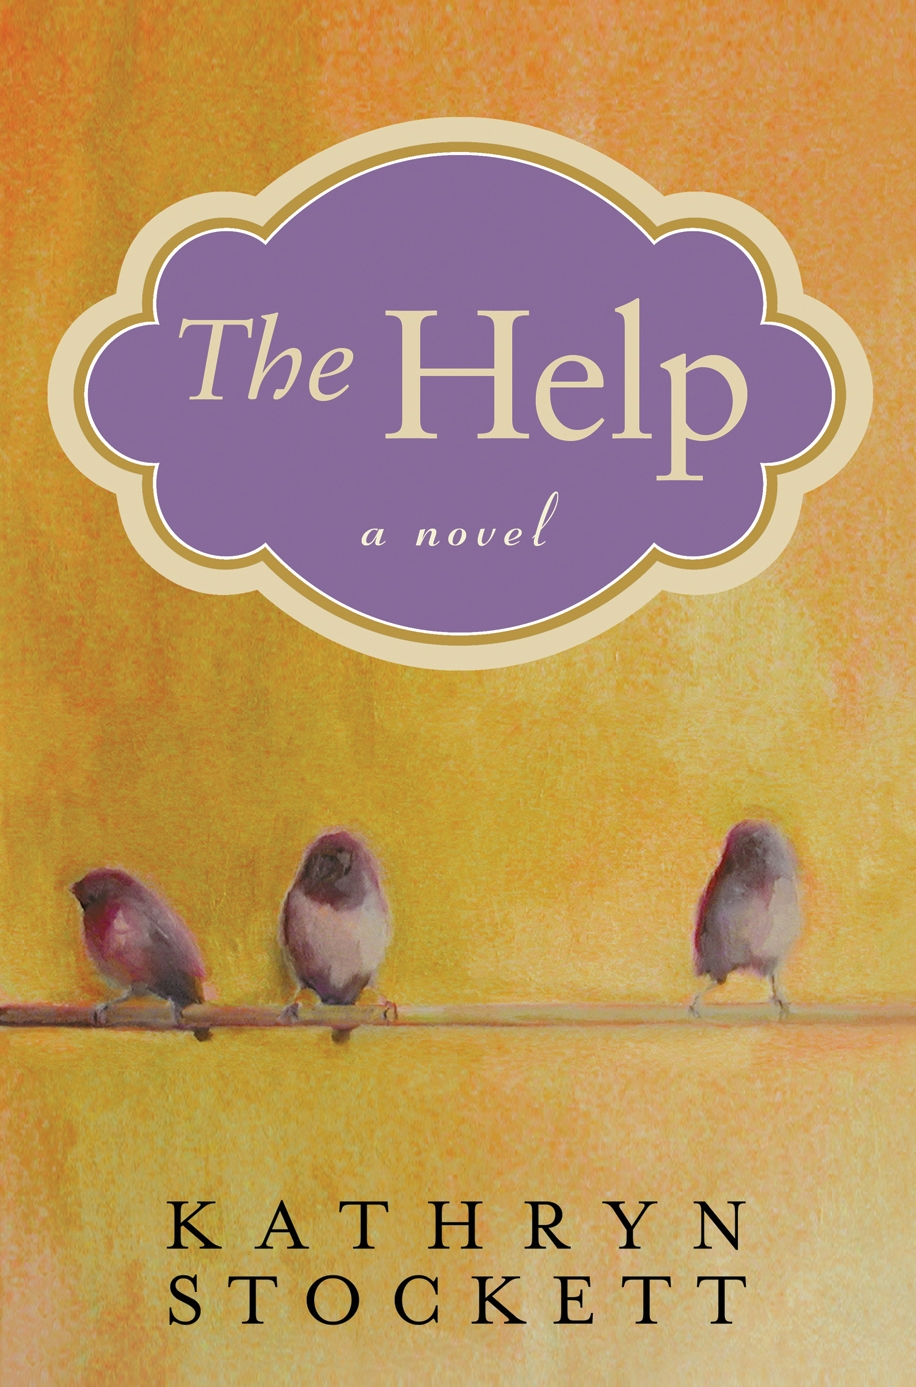 The help book review quotes | Cornerstone Community Church ...